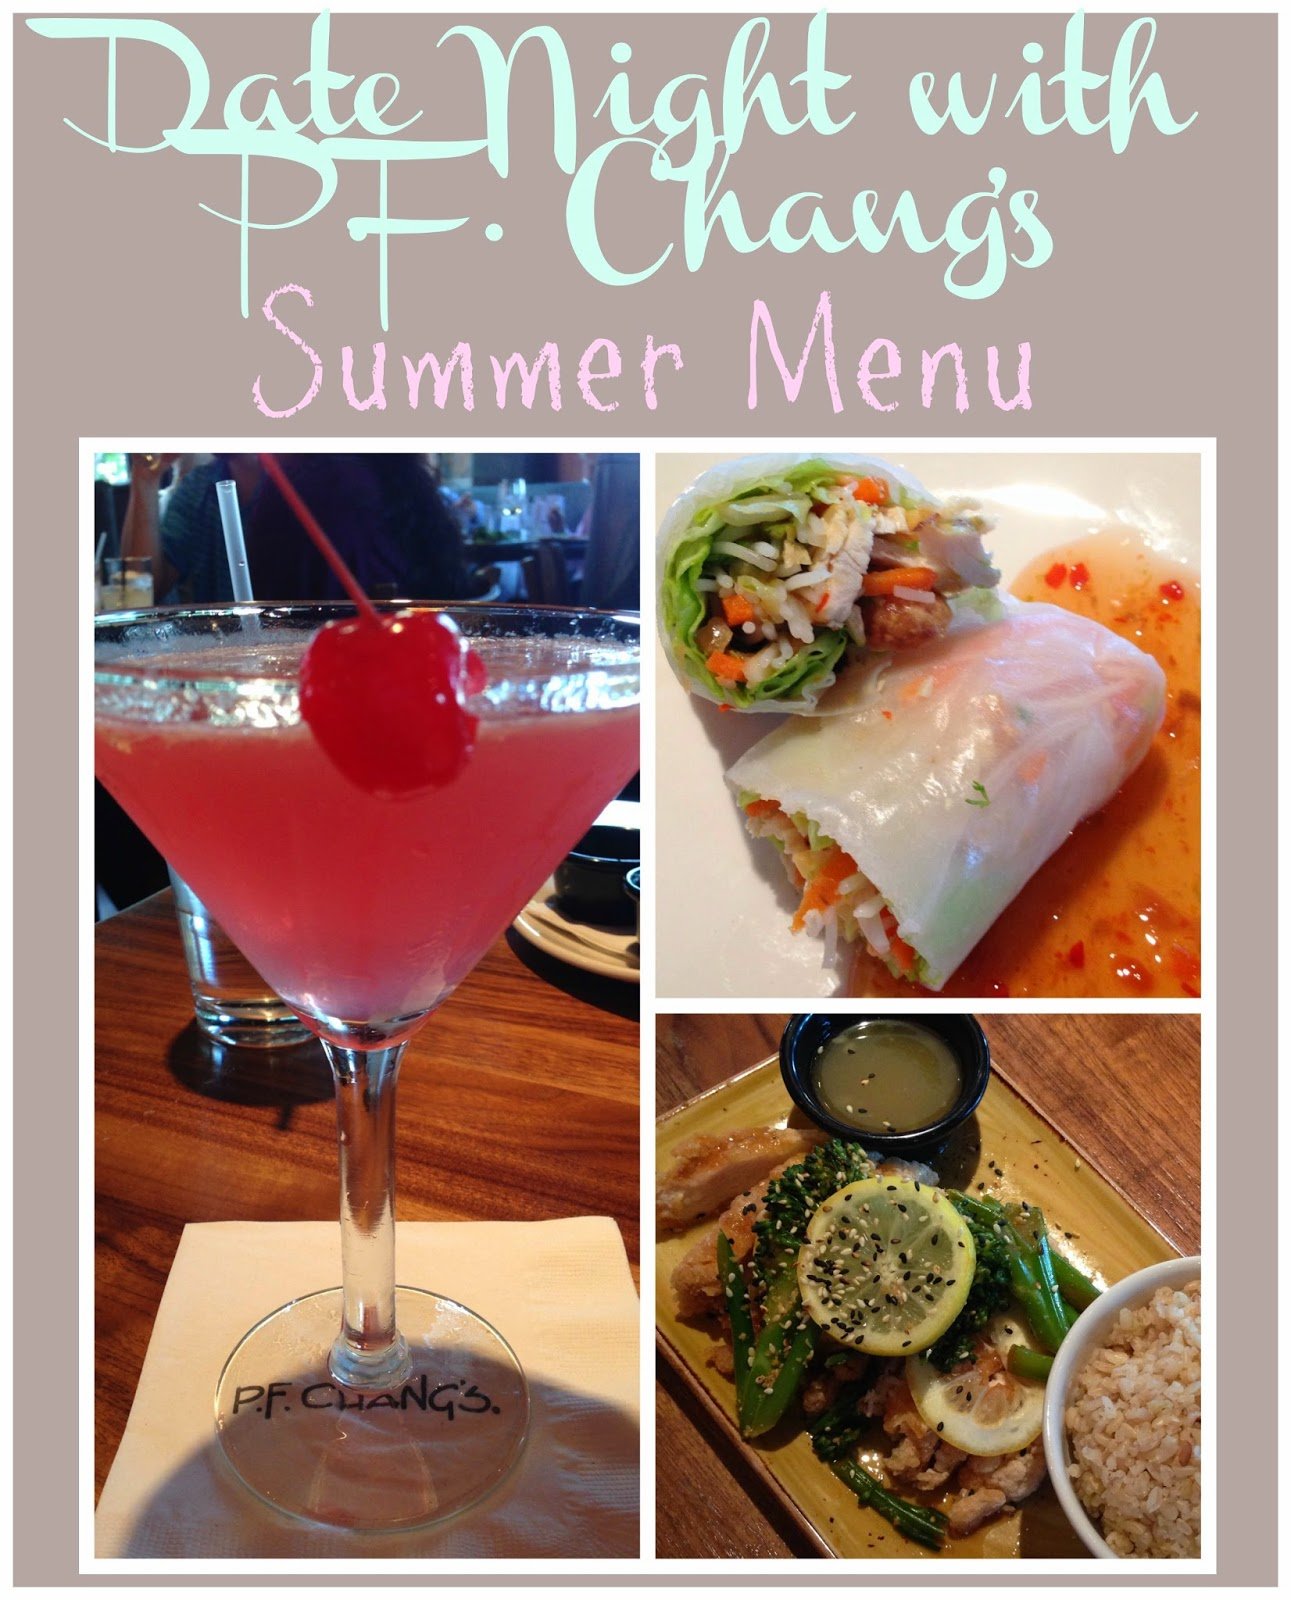 P.F. Chang's Menu, P.F. Chang's Summer Menu, P.F. Chang's cocktails, Small plates at P.F. Chang's, Happy hour at P.F. Chang's, P.F. Chang's beer, Beer and Asian food, Beer and food pairings